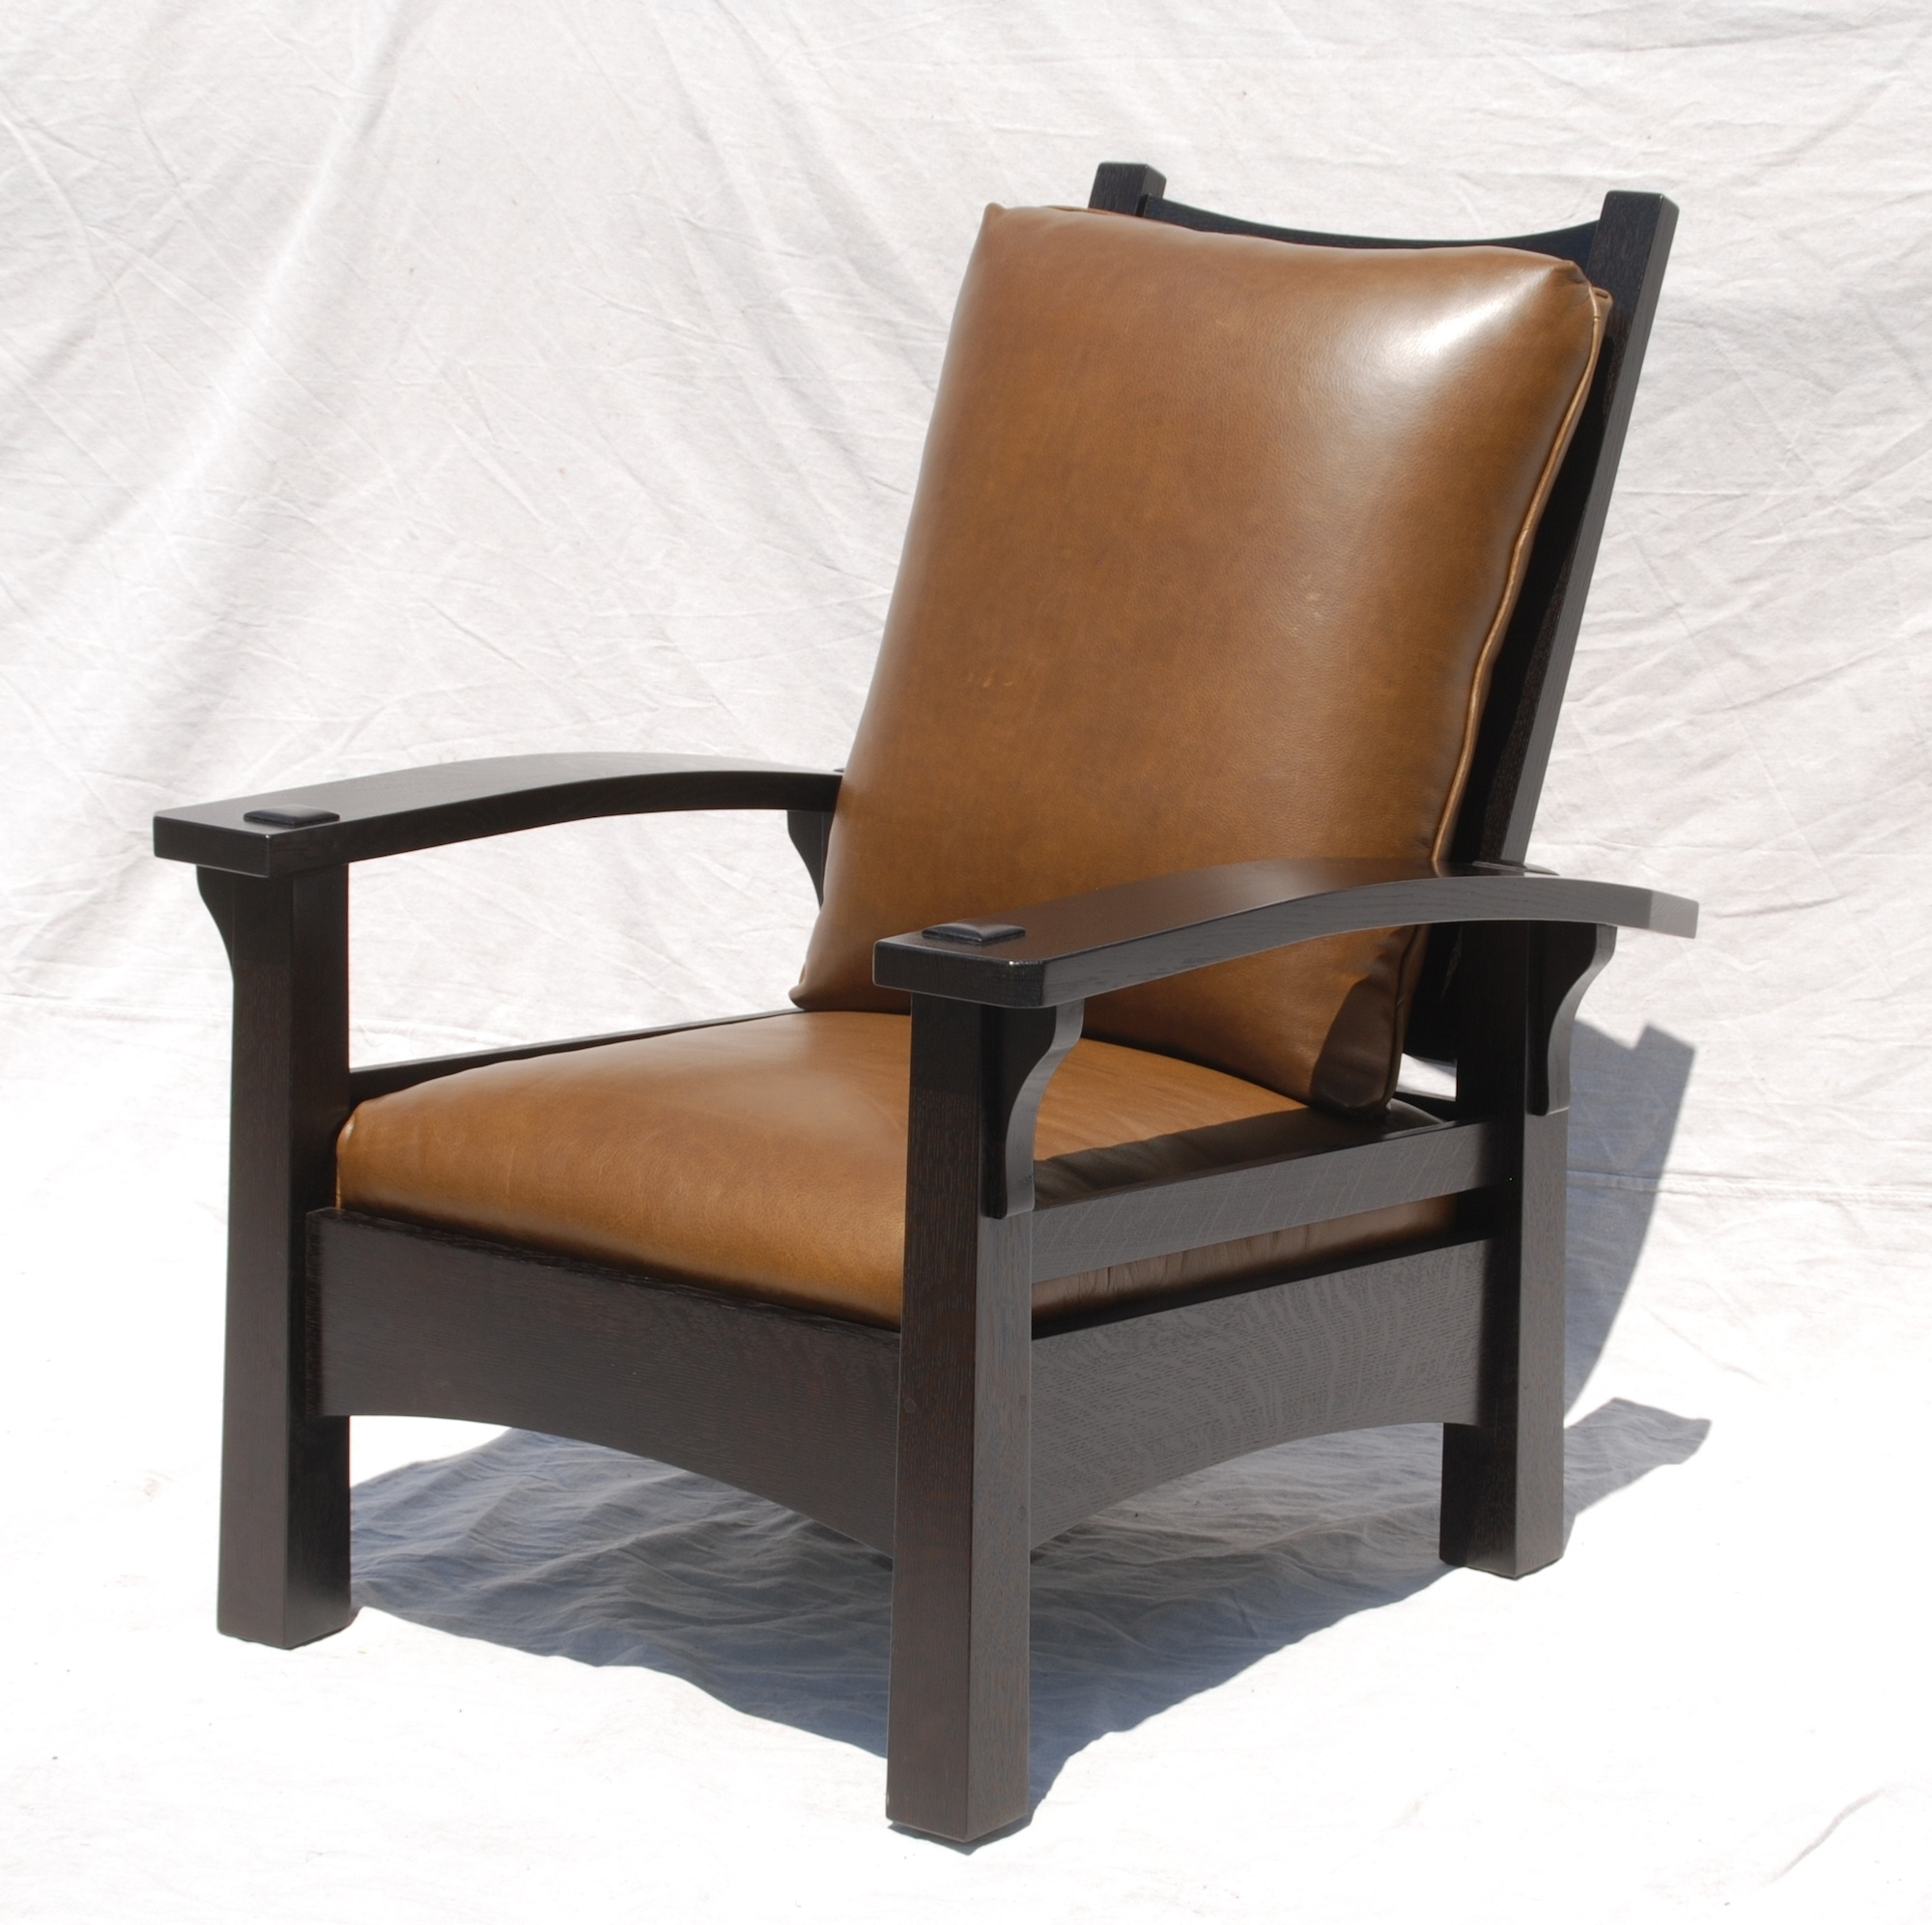 Voorhees Craftsman Mission Oak Furniture – Replica Gustav Stickley In Best And Newest Craftsman Arm Chairs (#18 of 20)